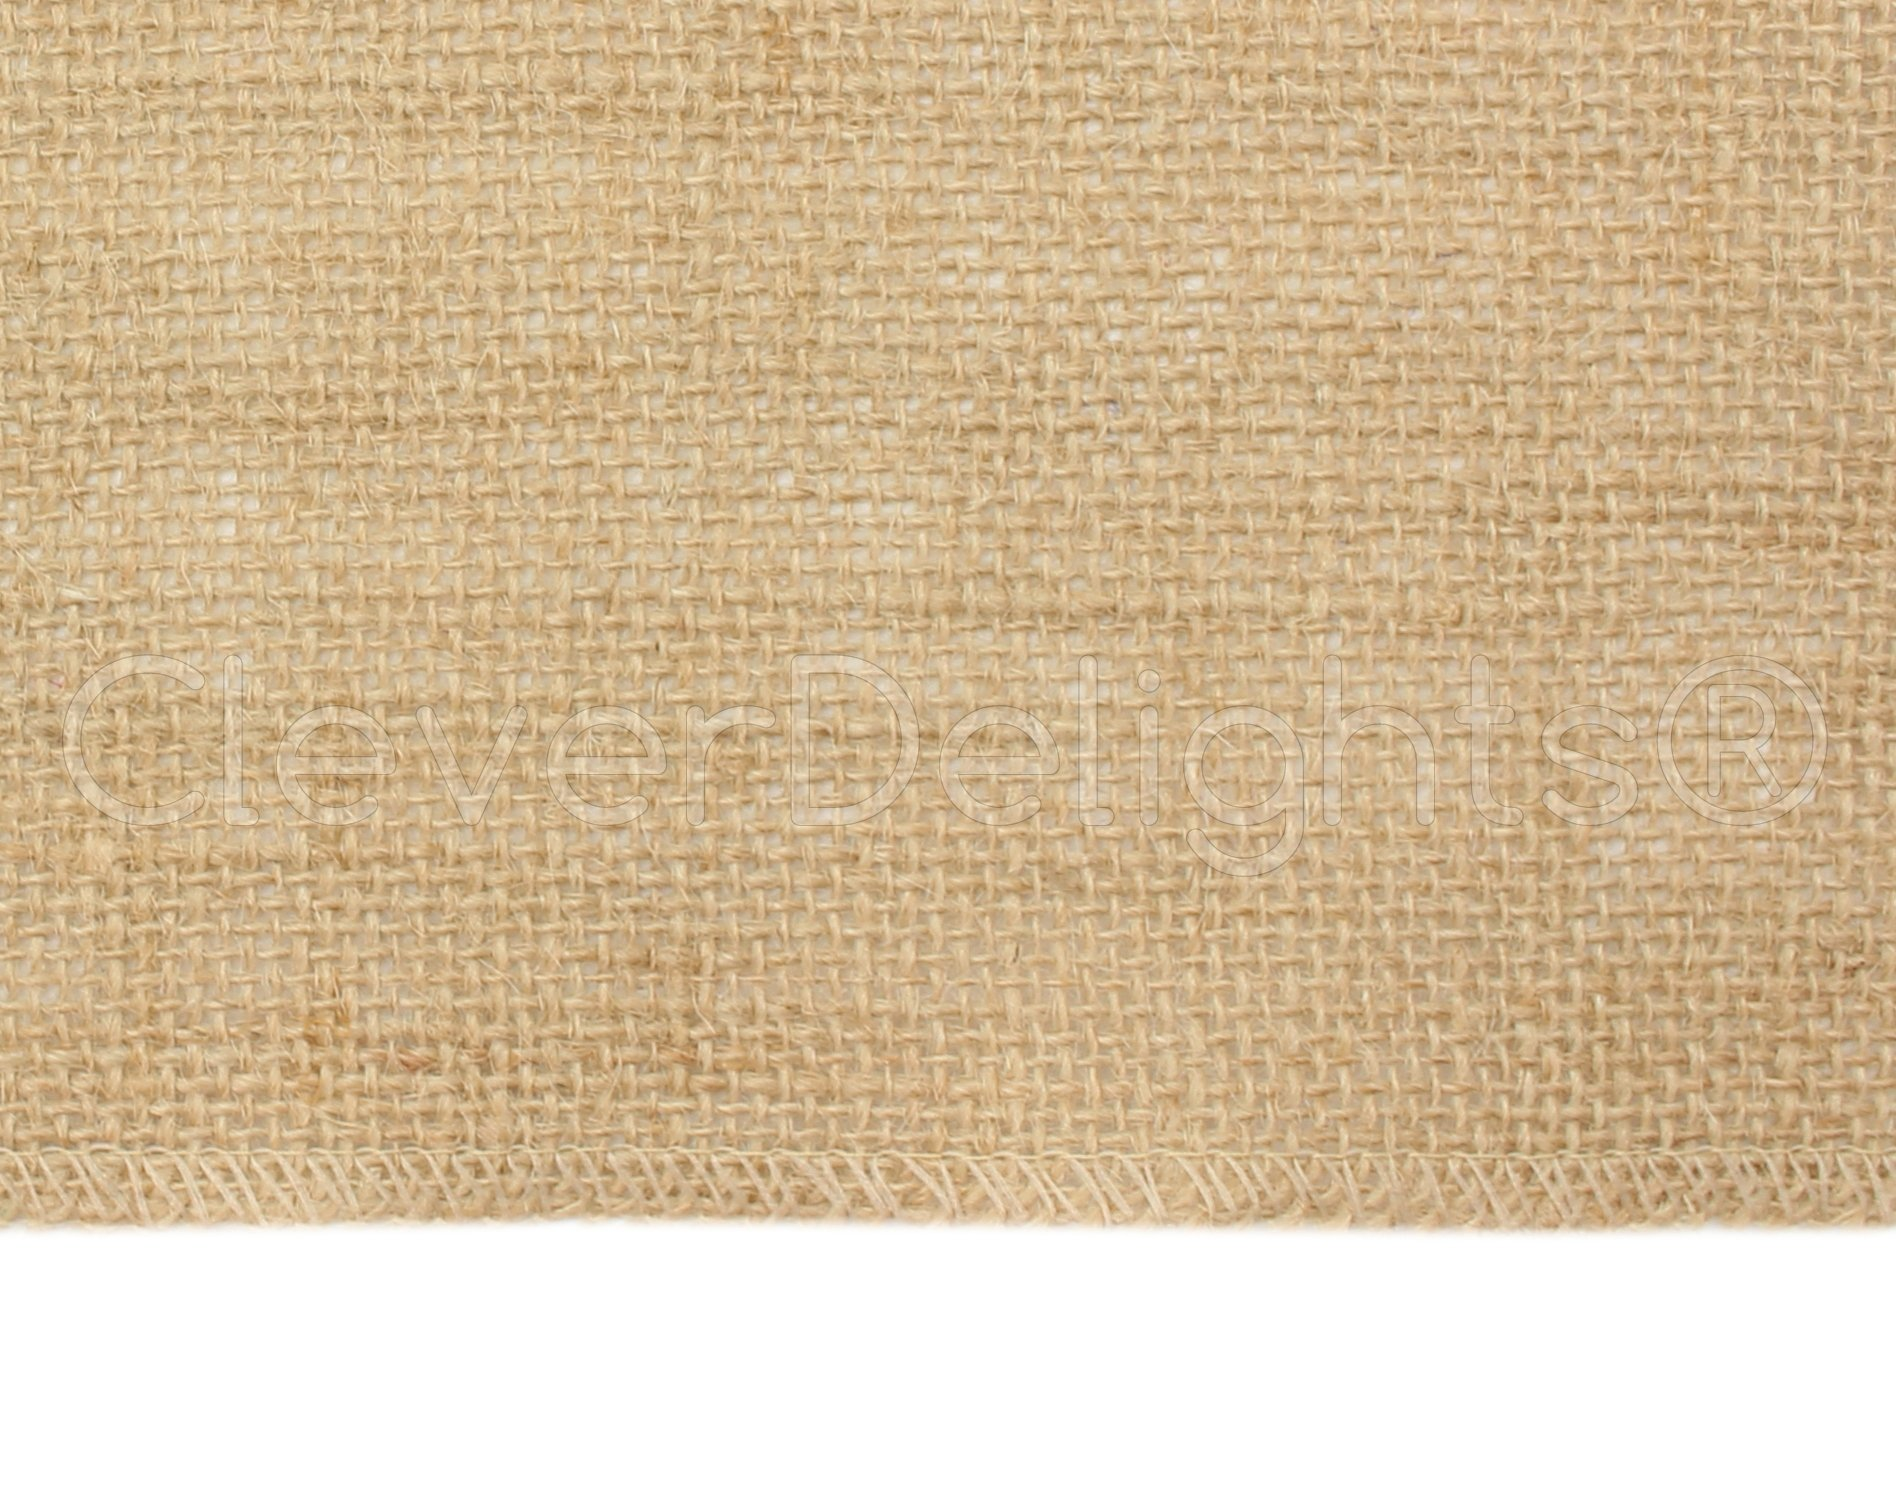 CleverDelights 14'' Premium Burlap Roll - 100 Yards - No-Fray Finished Edges - Natural Jute Burlap Fabric by CleverDelights (Image #2)